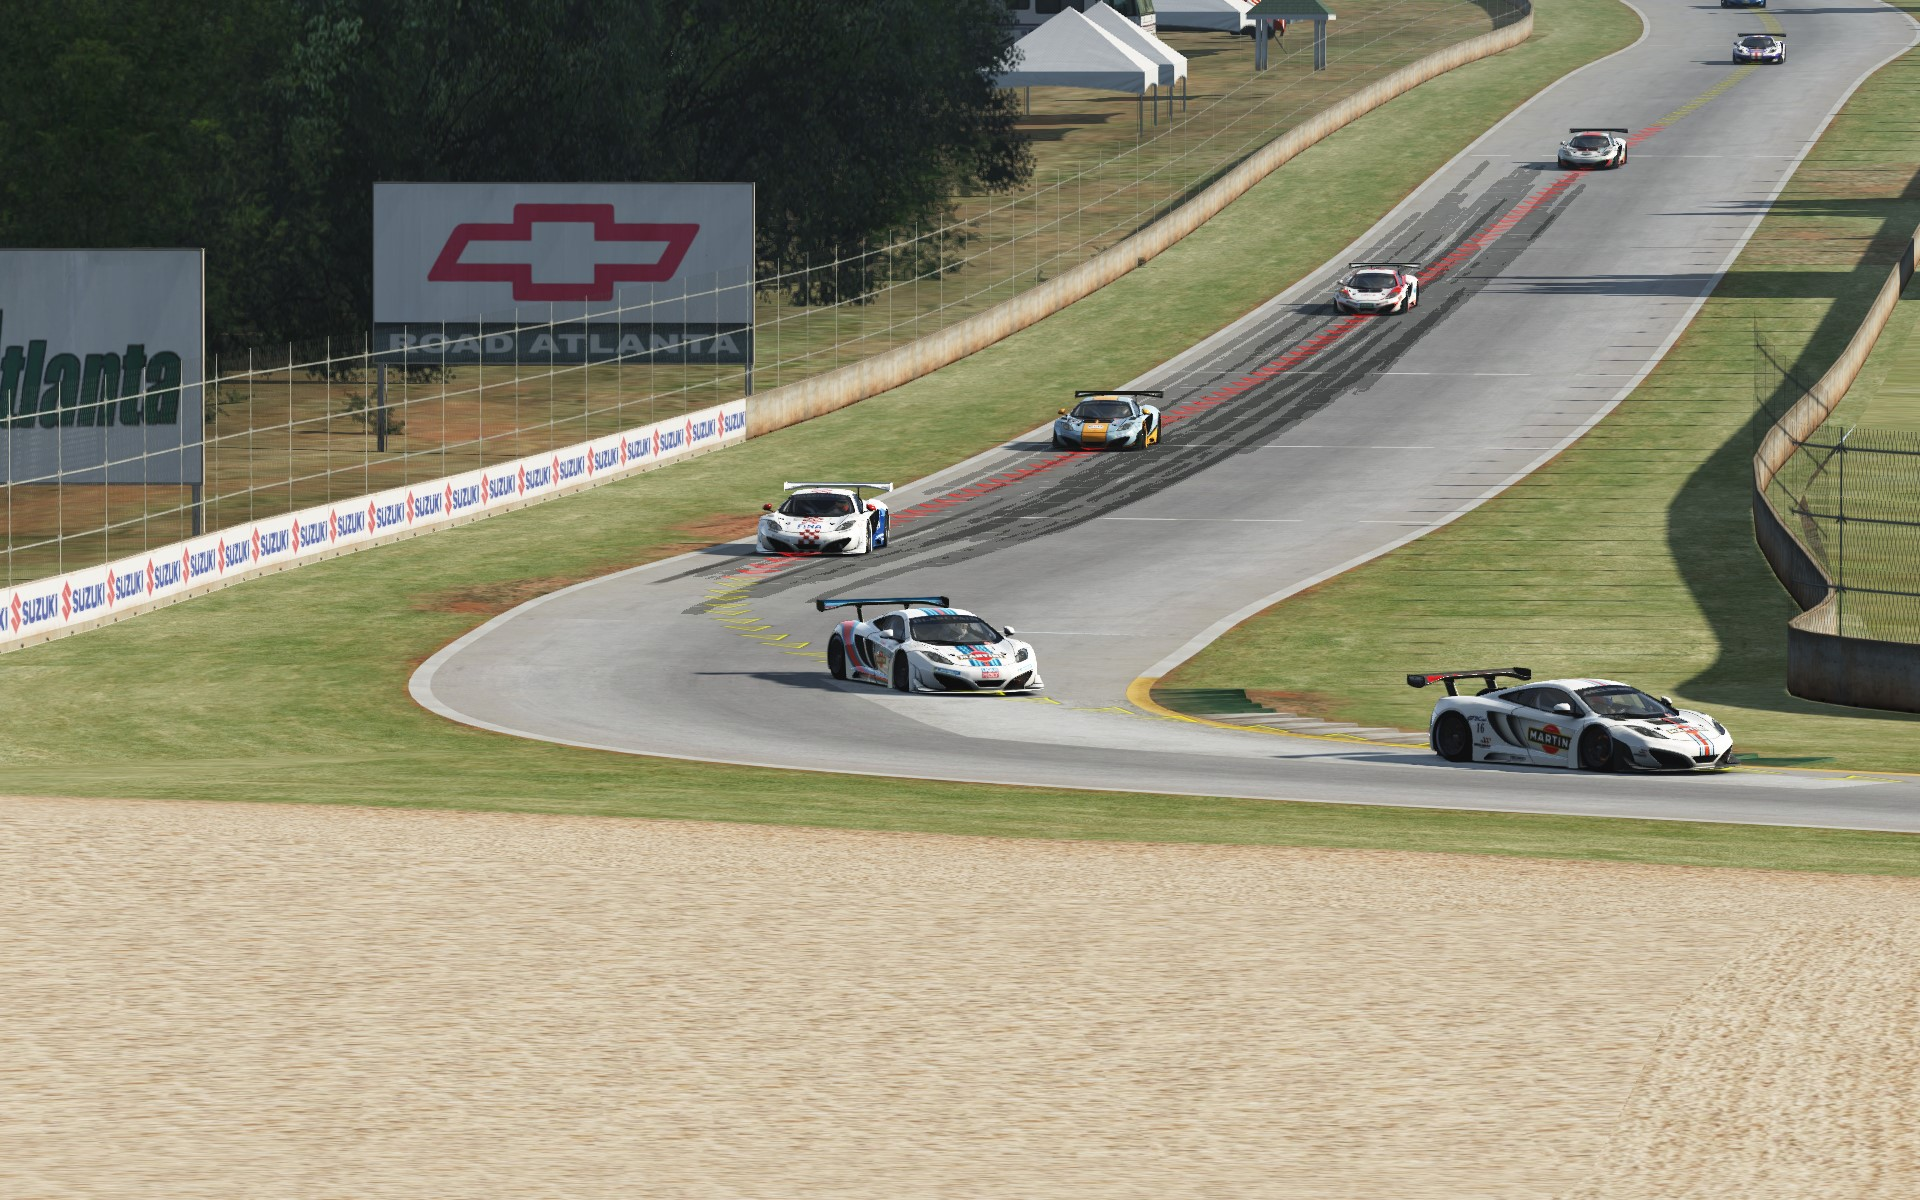 Screenshot_mclaren_mp412c_gt3_road atlanta_10-8-115-14-2-20.jpg